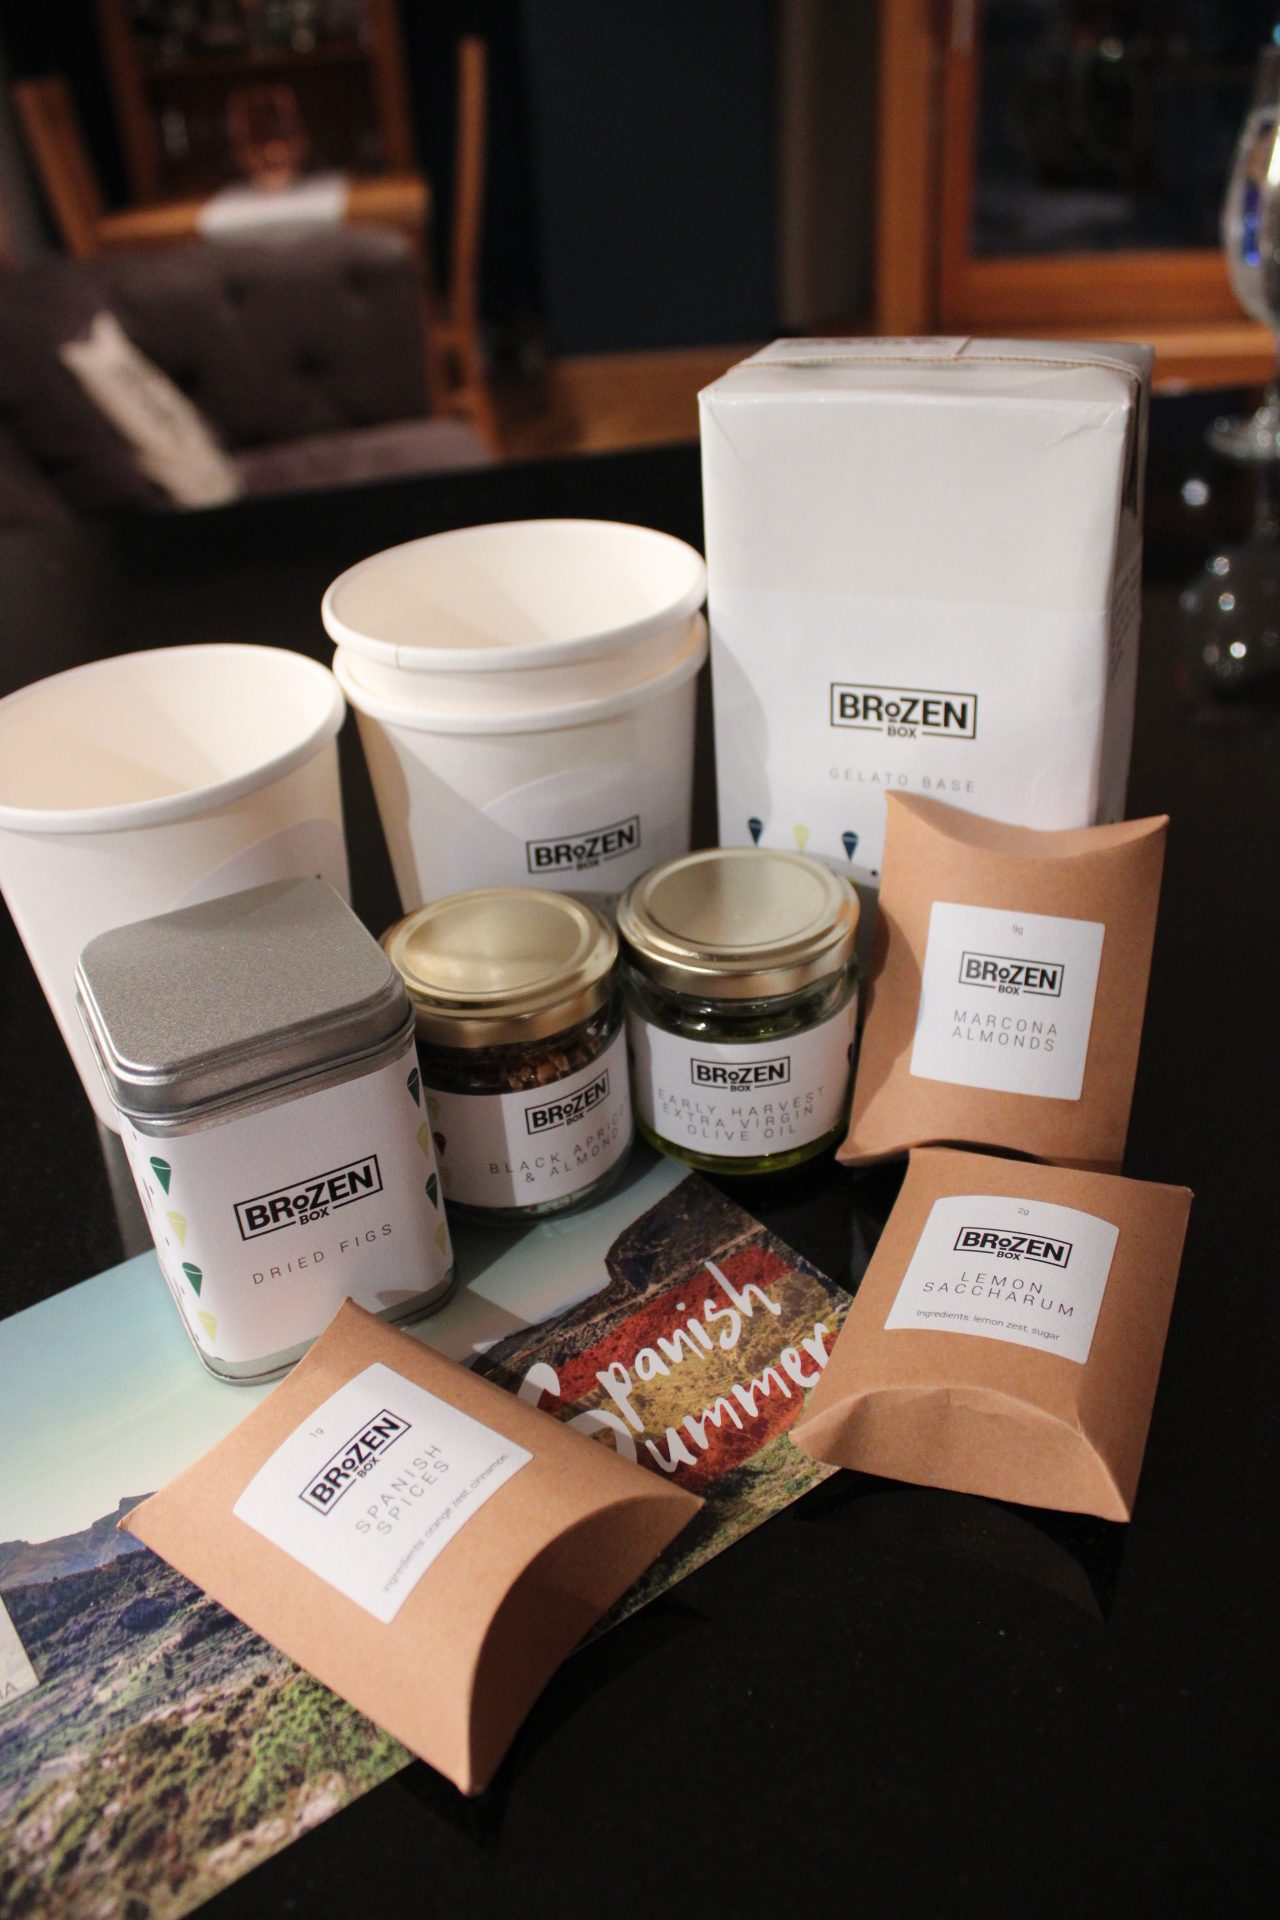 Best foodie subscription boxes: the contents of a brozen gelato subscription box showing a mixture of jars, tubs and a carton of gelato base